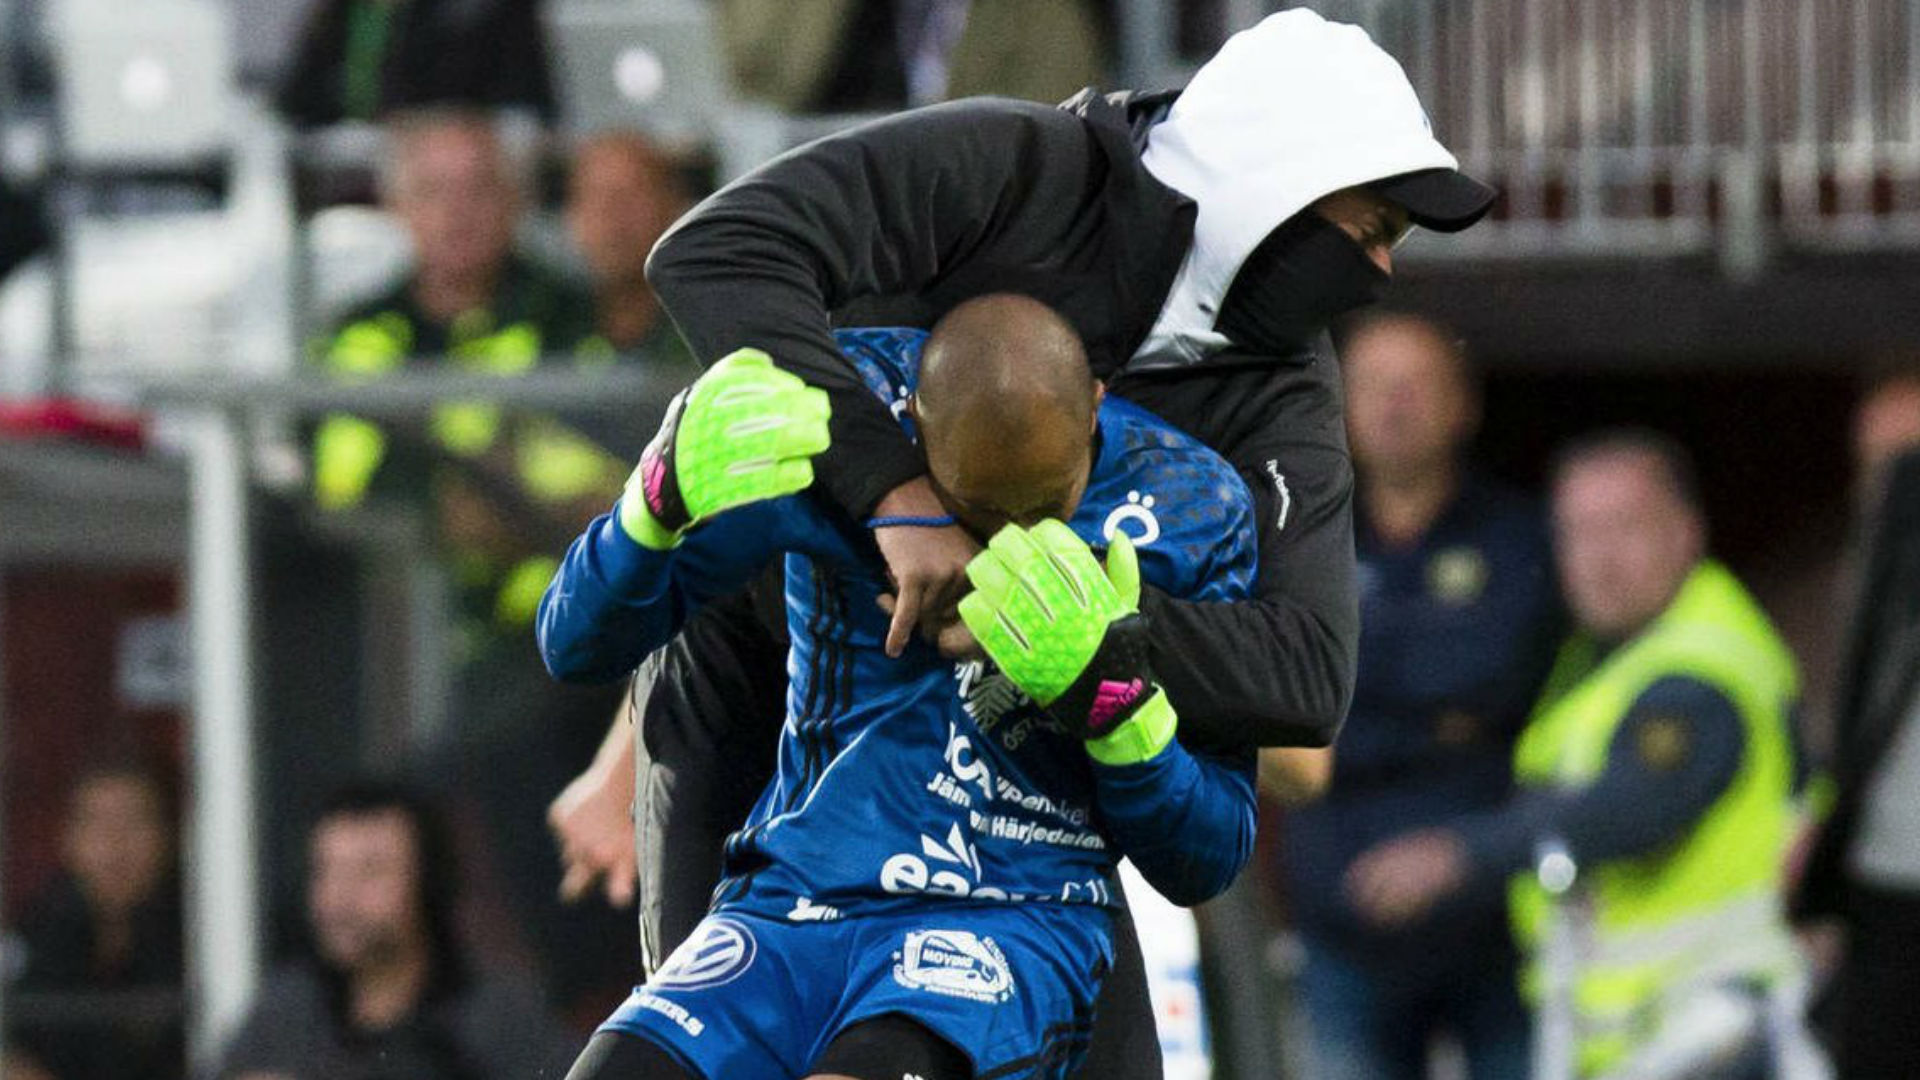 Match abandoned after Swedish goalkeeper attacked